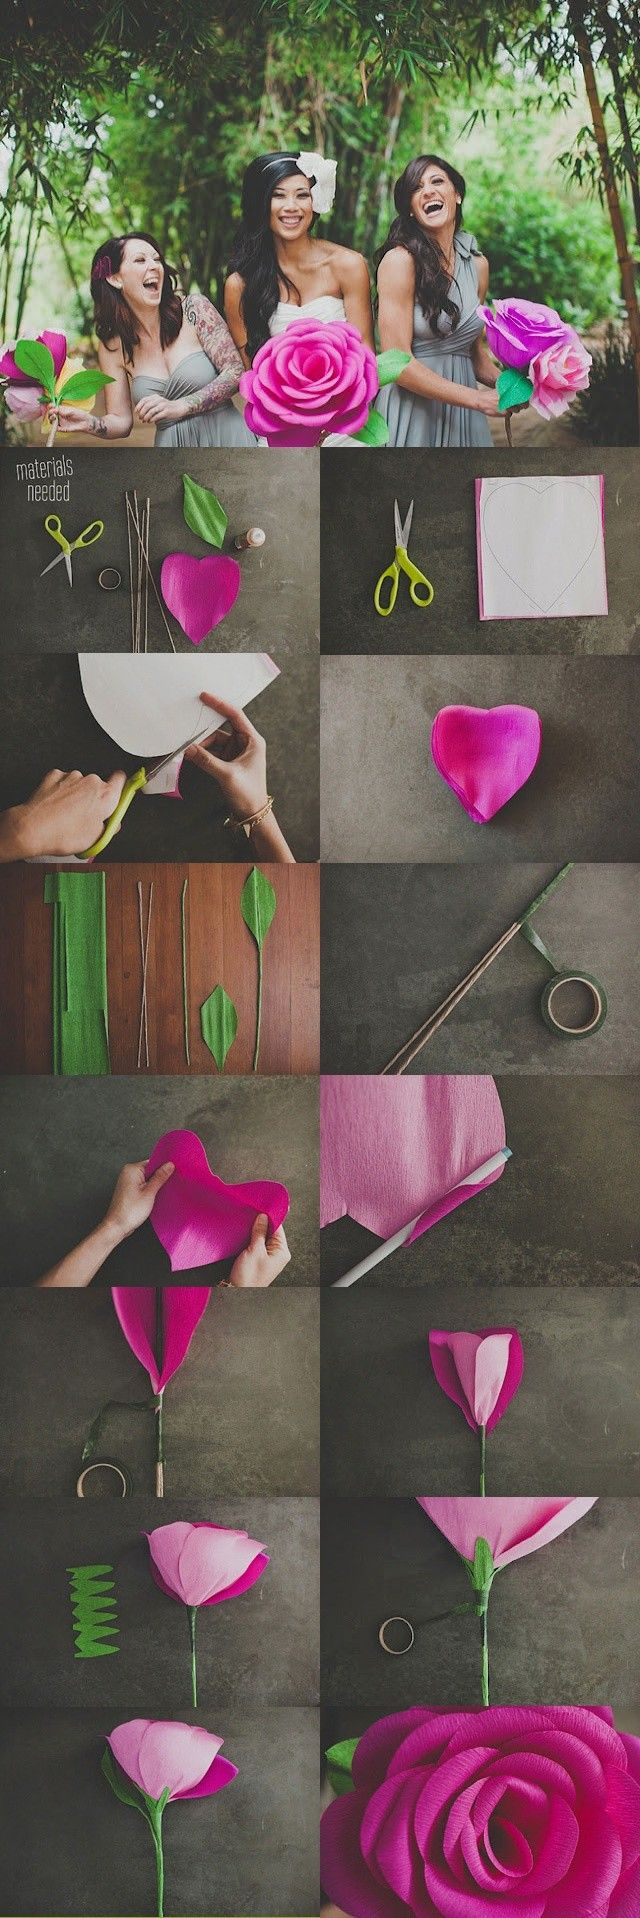 Where to buy Giant diy flower of hot pink Paper Roses tutorial - paper roses crafts